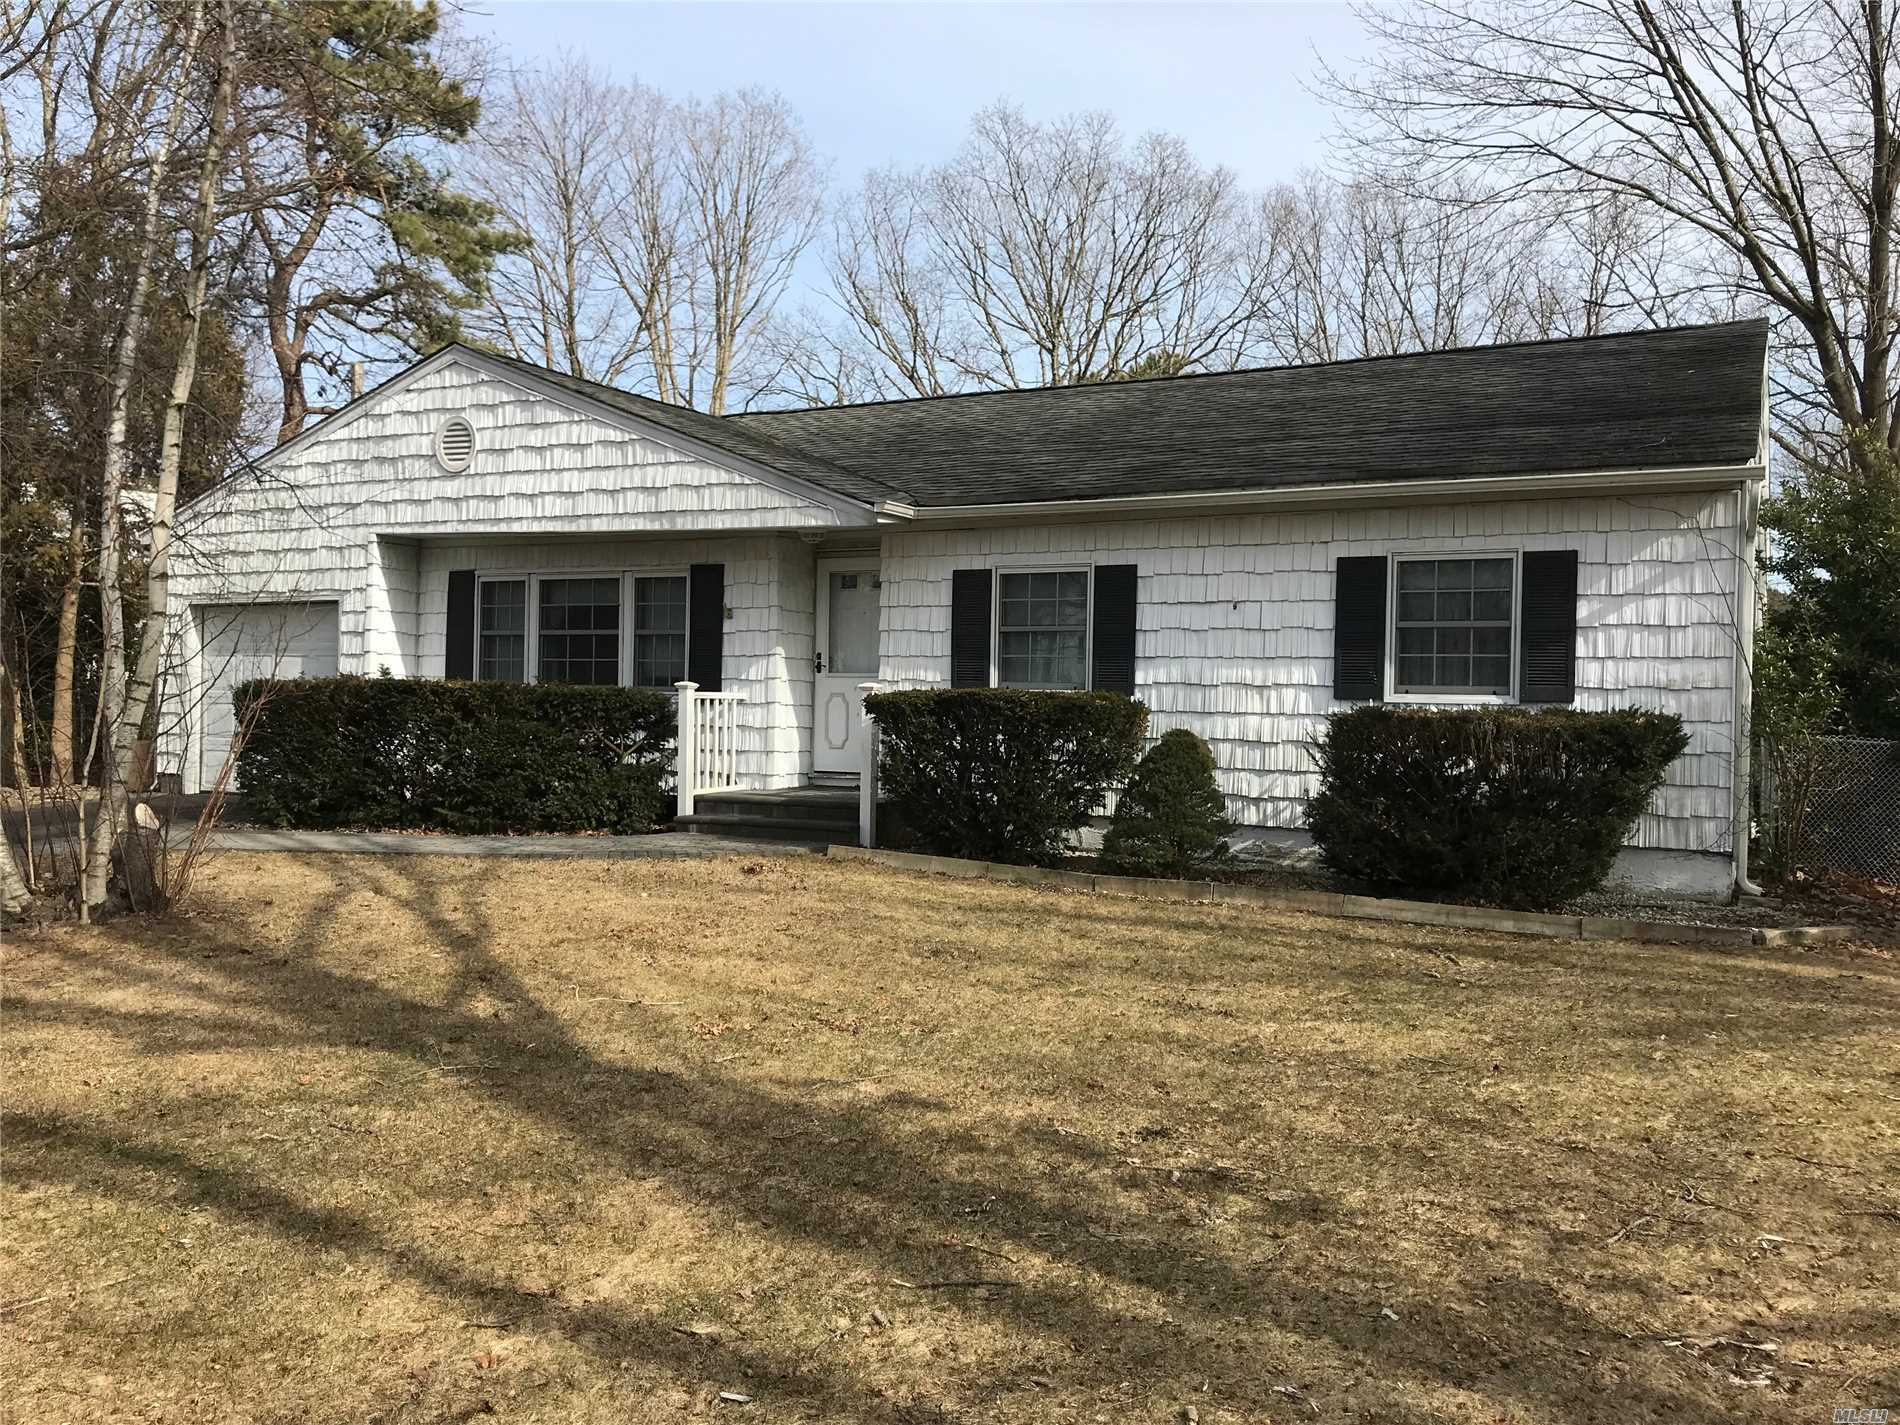 Beautiful 3 Bedroom Ranch On Large Property Features New Central Ac And Hardwood Floors, 2 Full Baths, A Formal Dining Room, Living Room & Den With Fireplace. An Attached Garage And A Full Basement.